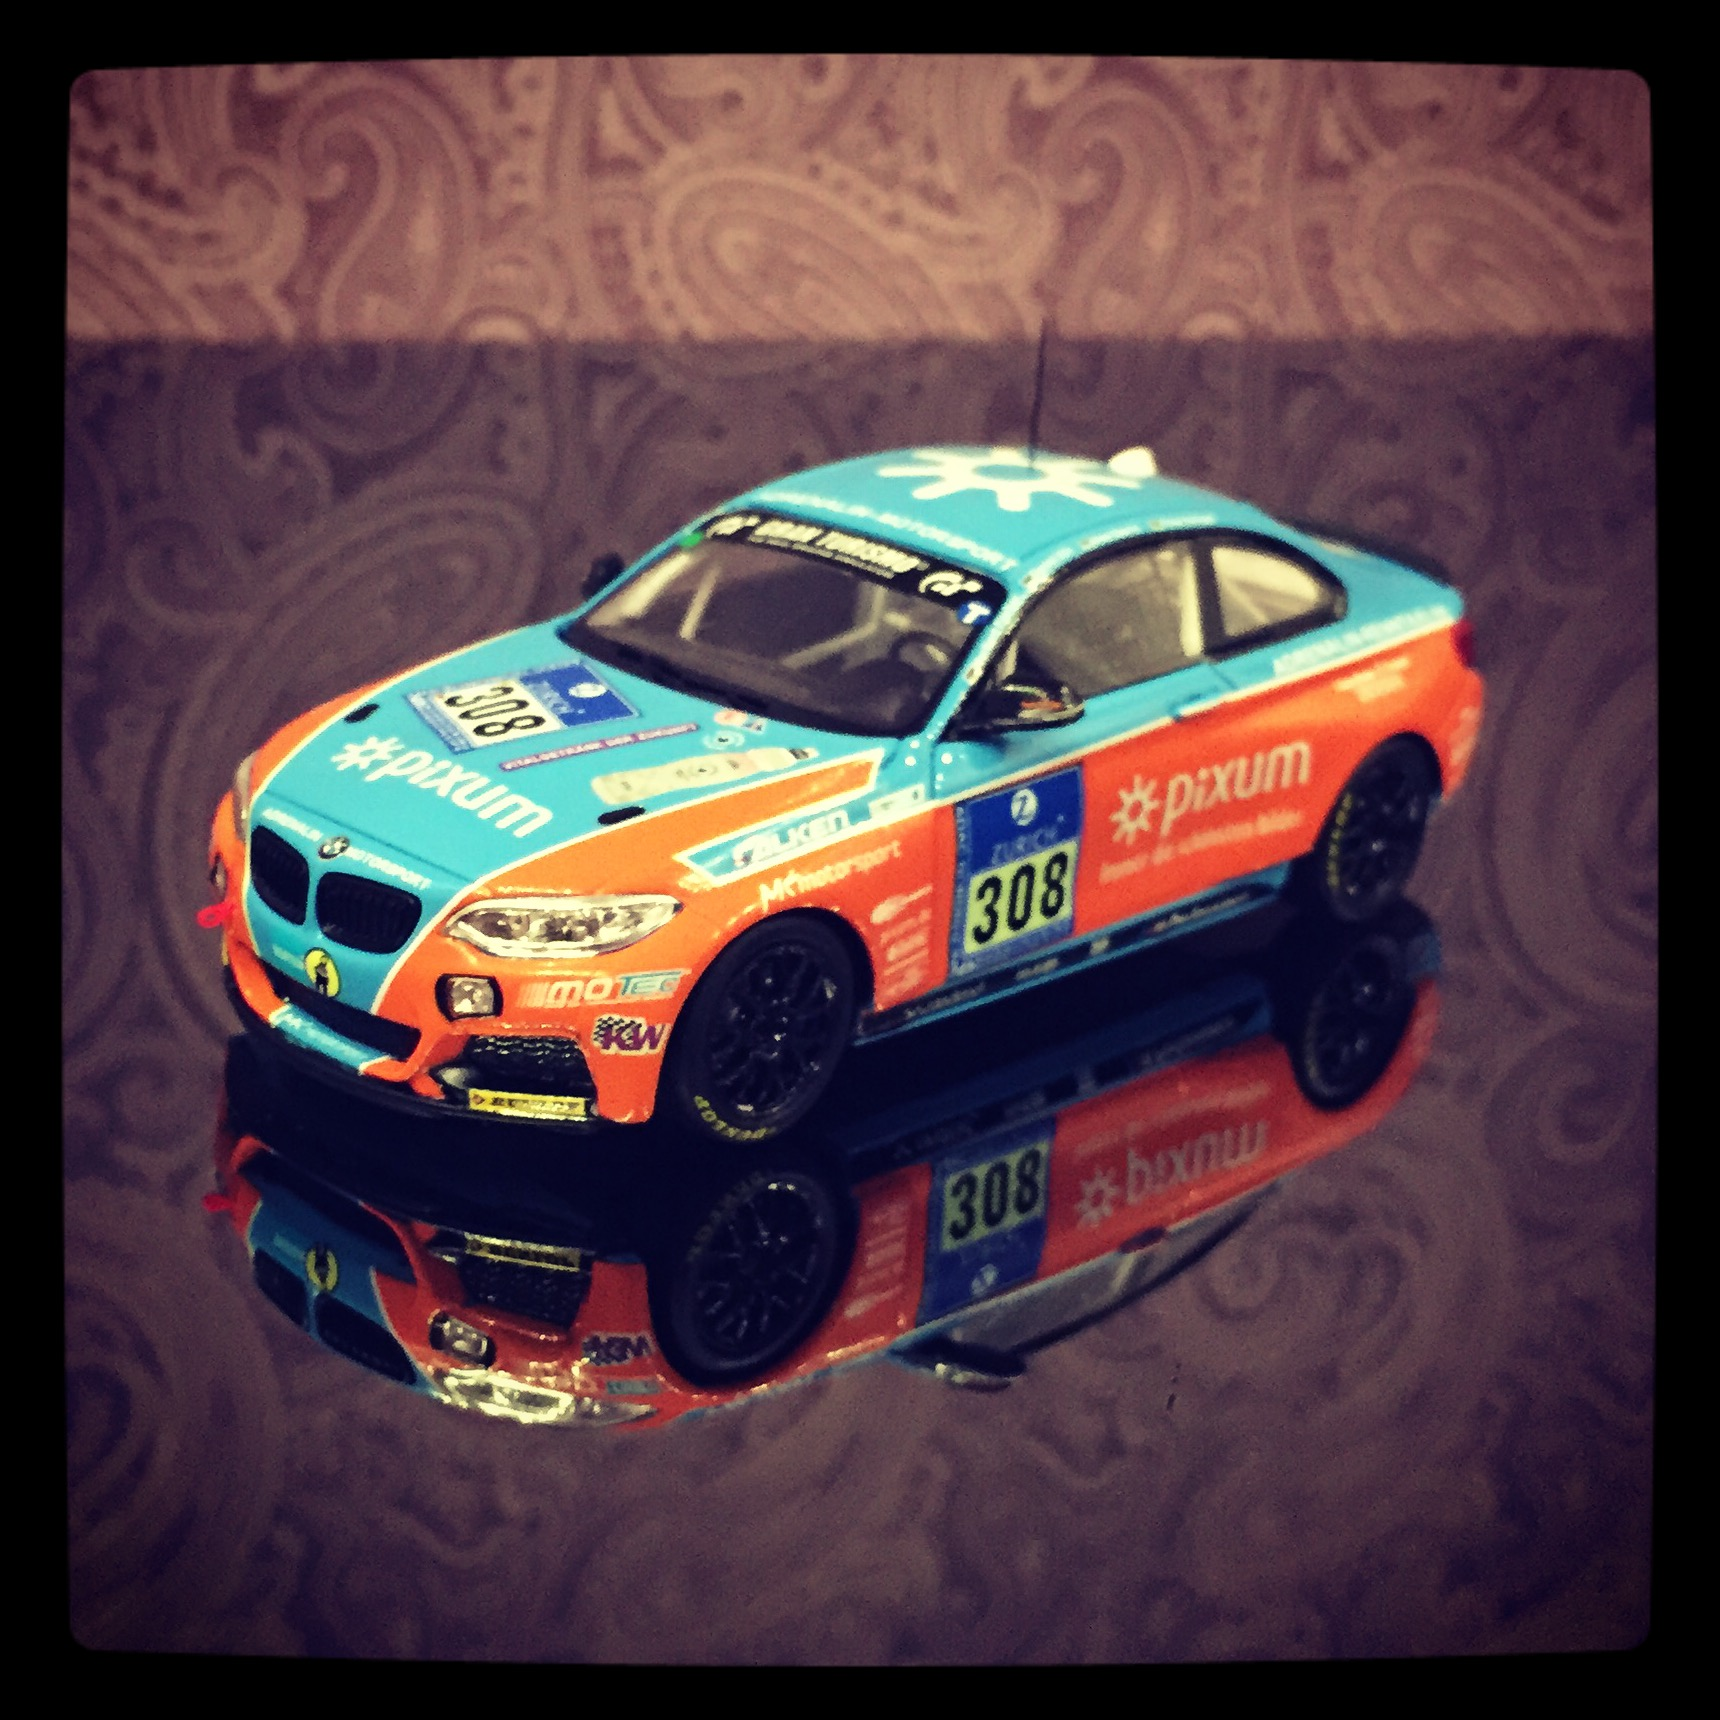 BMW M235i (F22) racing, team Adrenalin Motorsport, #308 Fischer/Zils/Eberts/Schupp, 24h Nurburgring 2014, le 1 of 514pcs. (Minichamps)